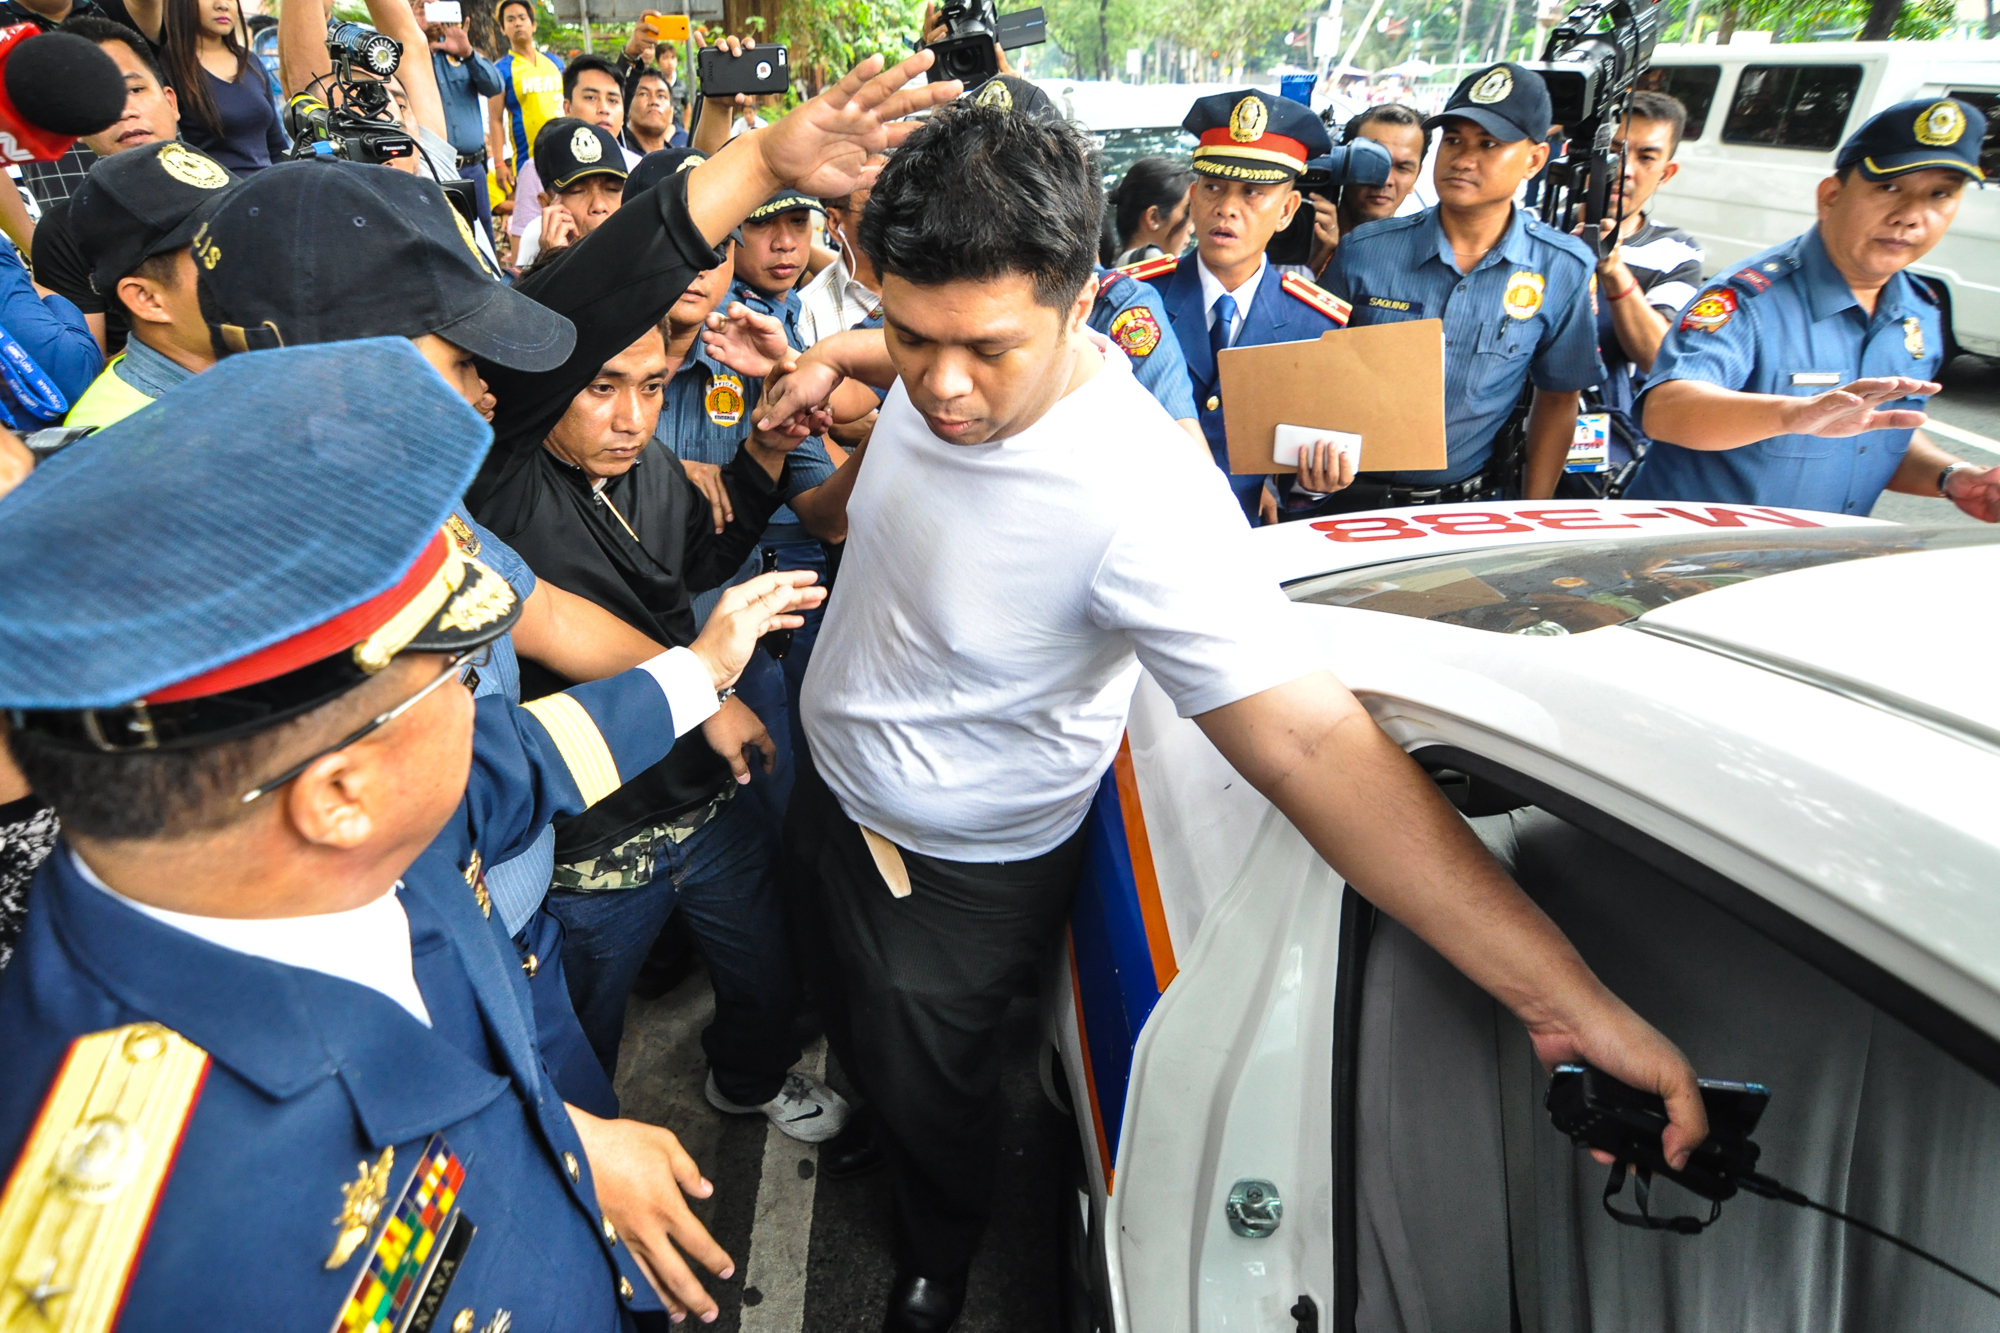 ARRESTED. Ex-INC Minister Lowell Menorca is secured by police officers after he was presented a warrant of arrest for libel on January 20, 2016. Photo by Lito Boras/Rappler